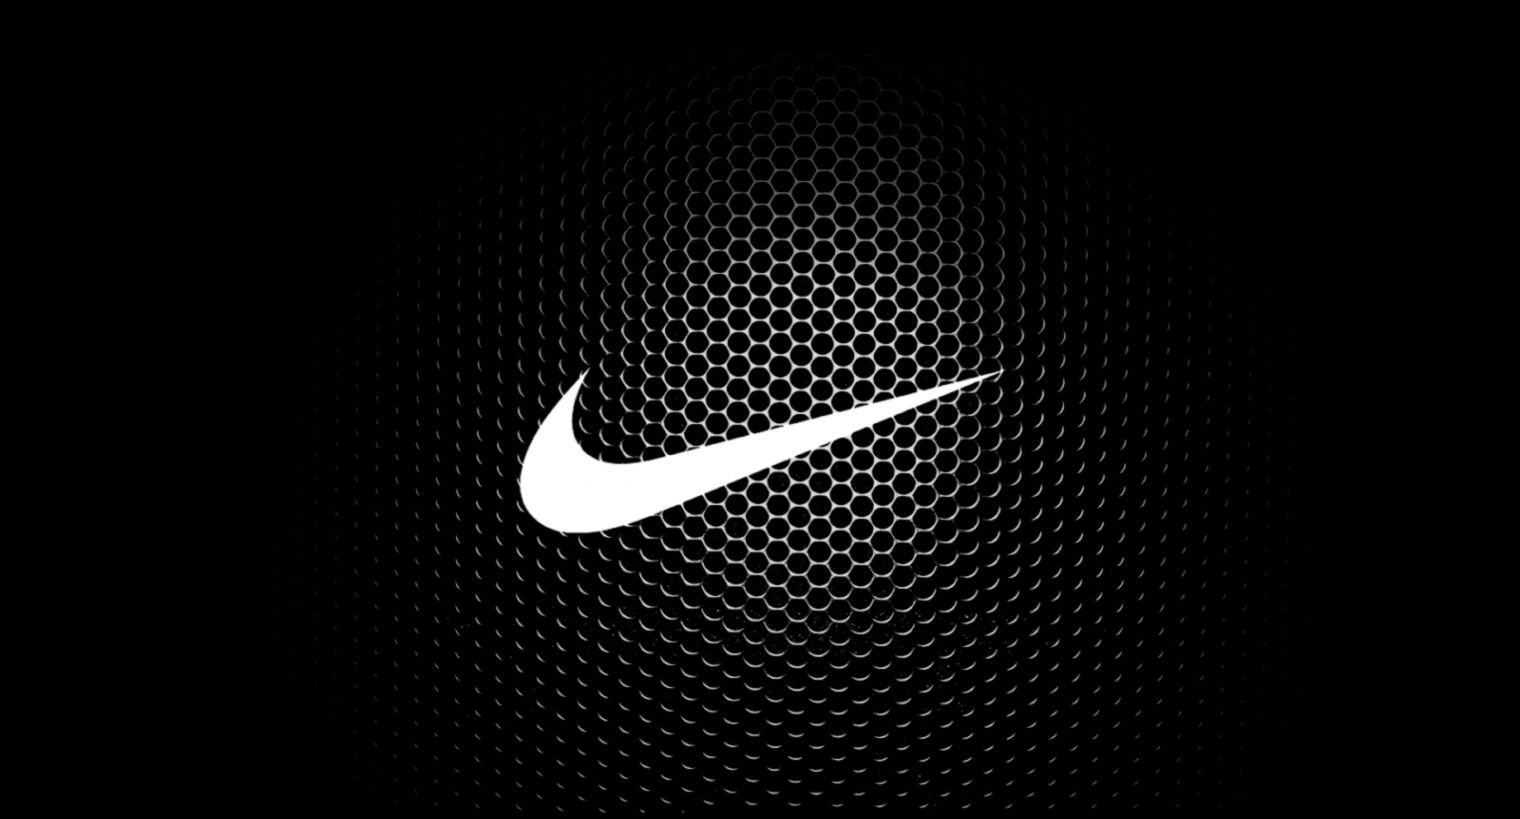 Nike Football Minecraft Wallpaper Hd This Wallpapers